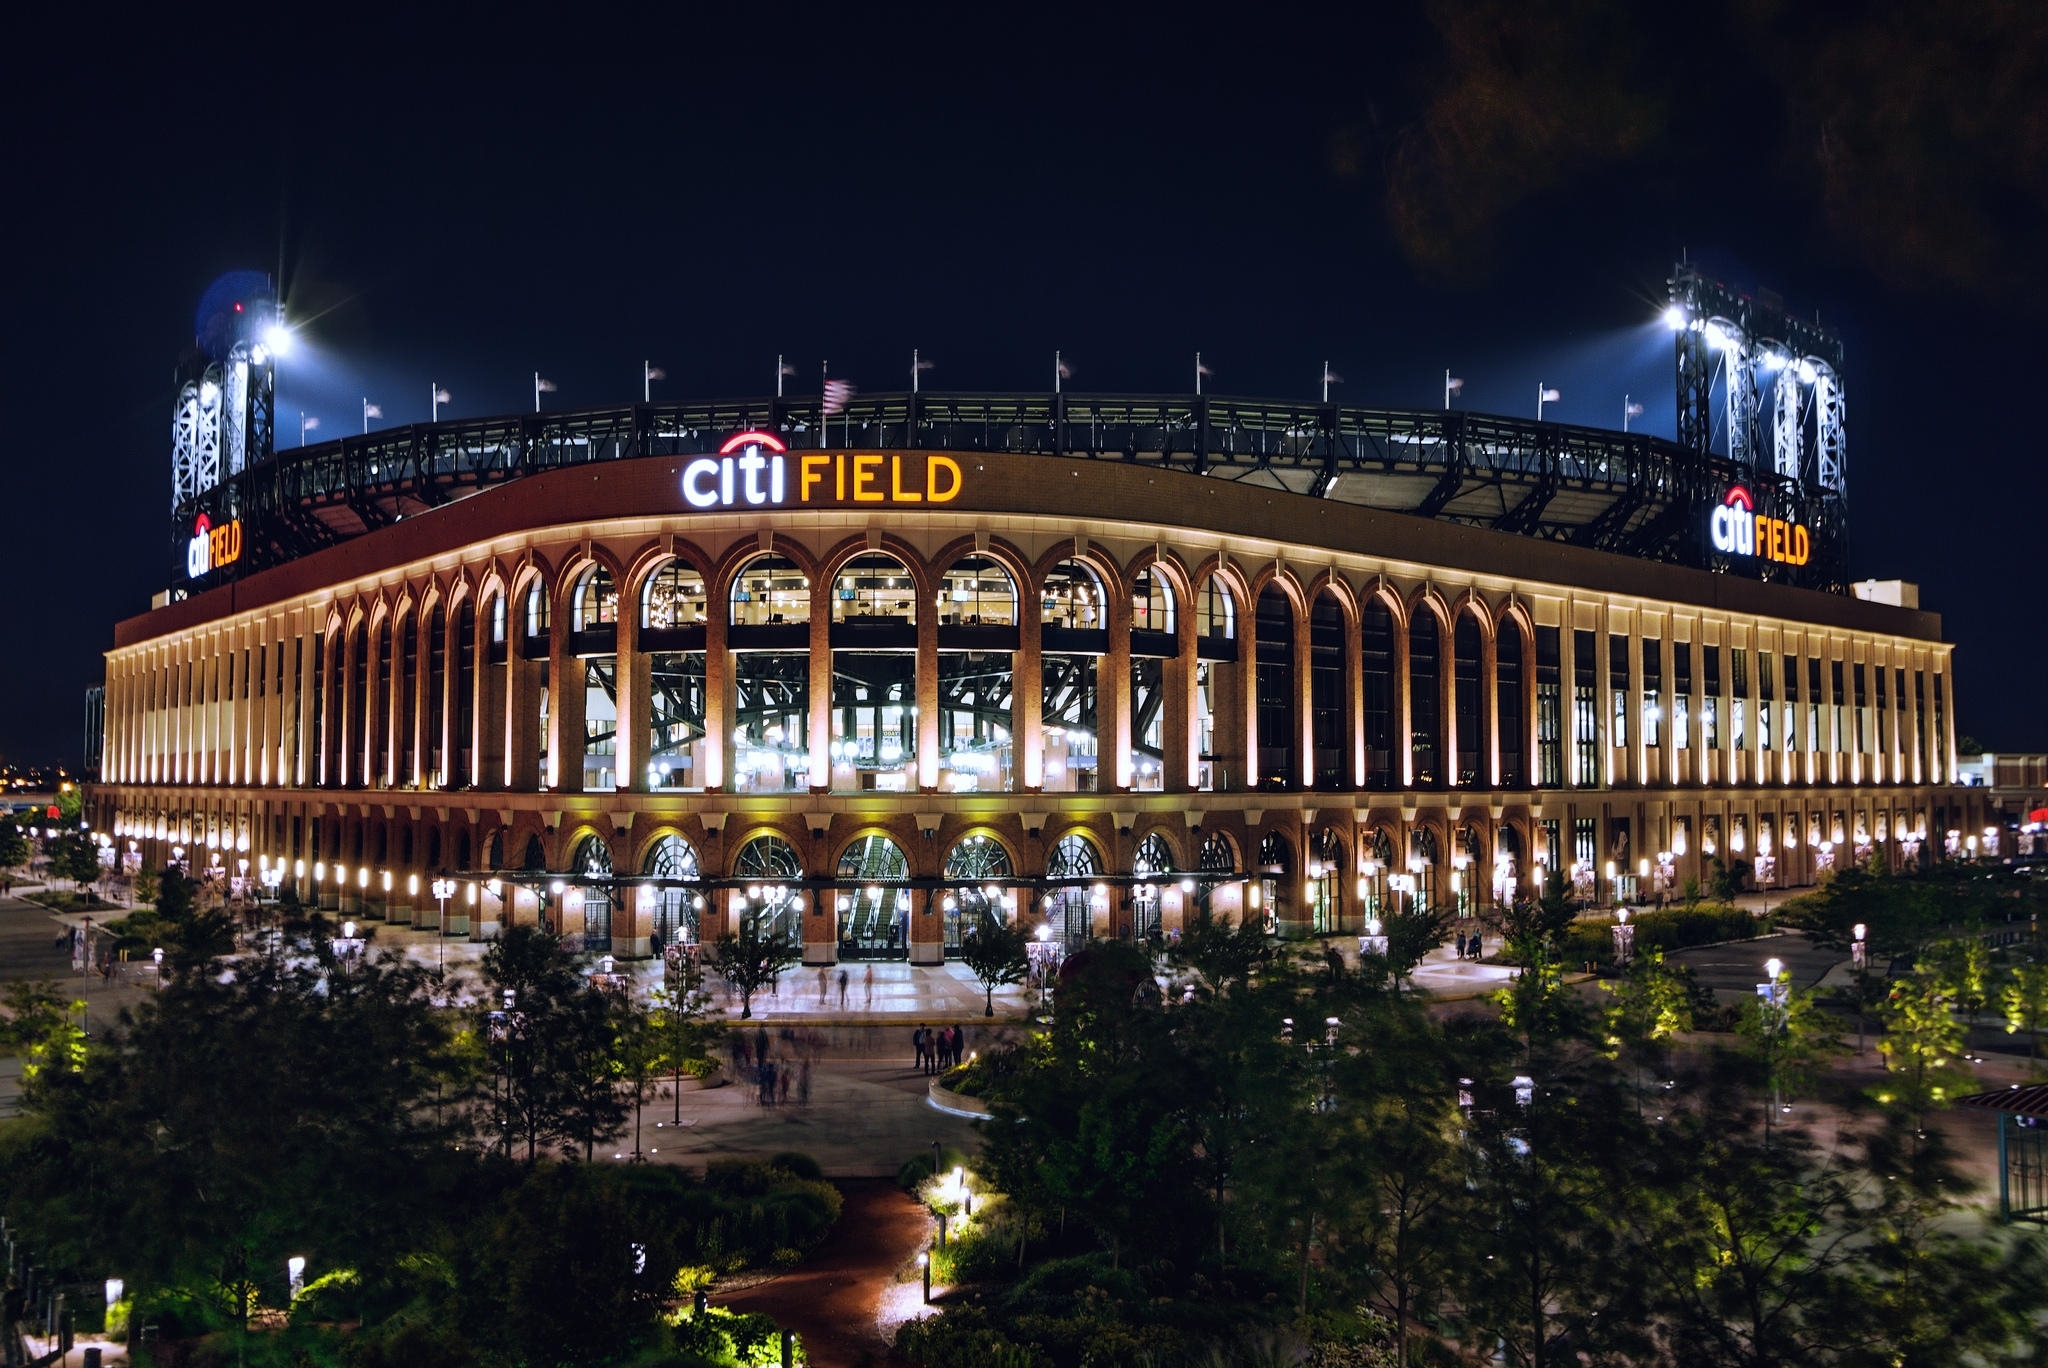 Citi Field is reachable via mass transit systems such as the New York City Subway 7 train at the Mets – Willets Pointstation, and the Long Island Rail Road station on the Port Washington Branch also called Mets – Willets Point. New York Water Taxi operates a free ferry to the stadium from Pier 11/Wall Street and the East 34th Street Ferry Landing before every game. image: courtesy citifield